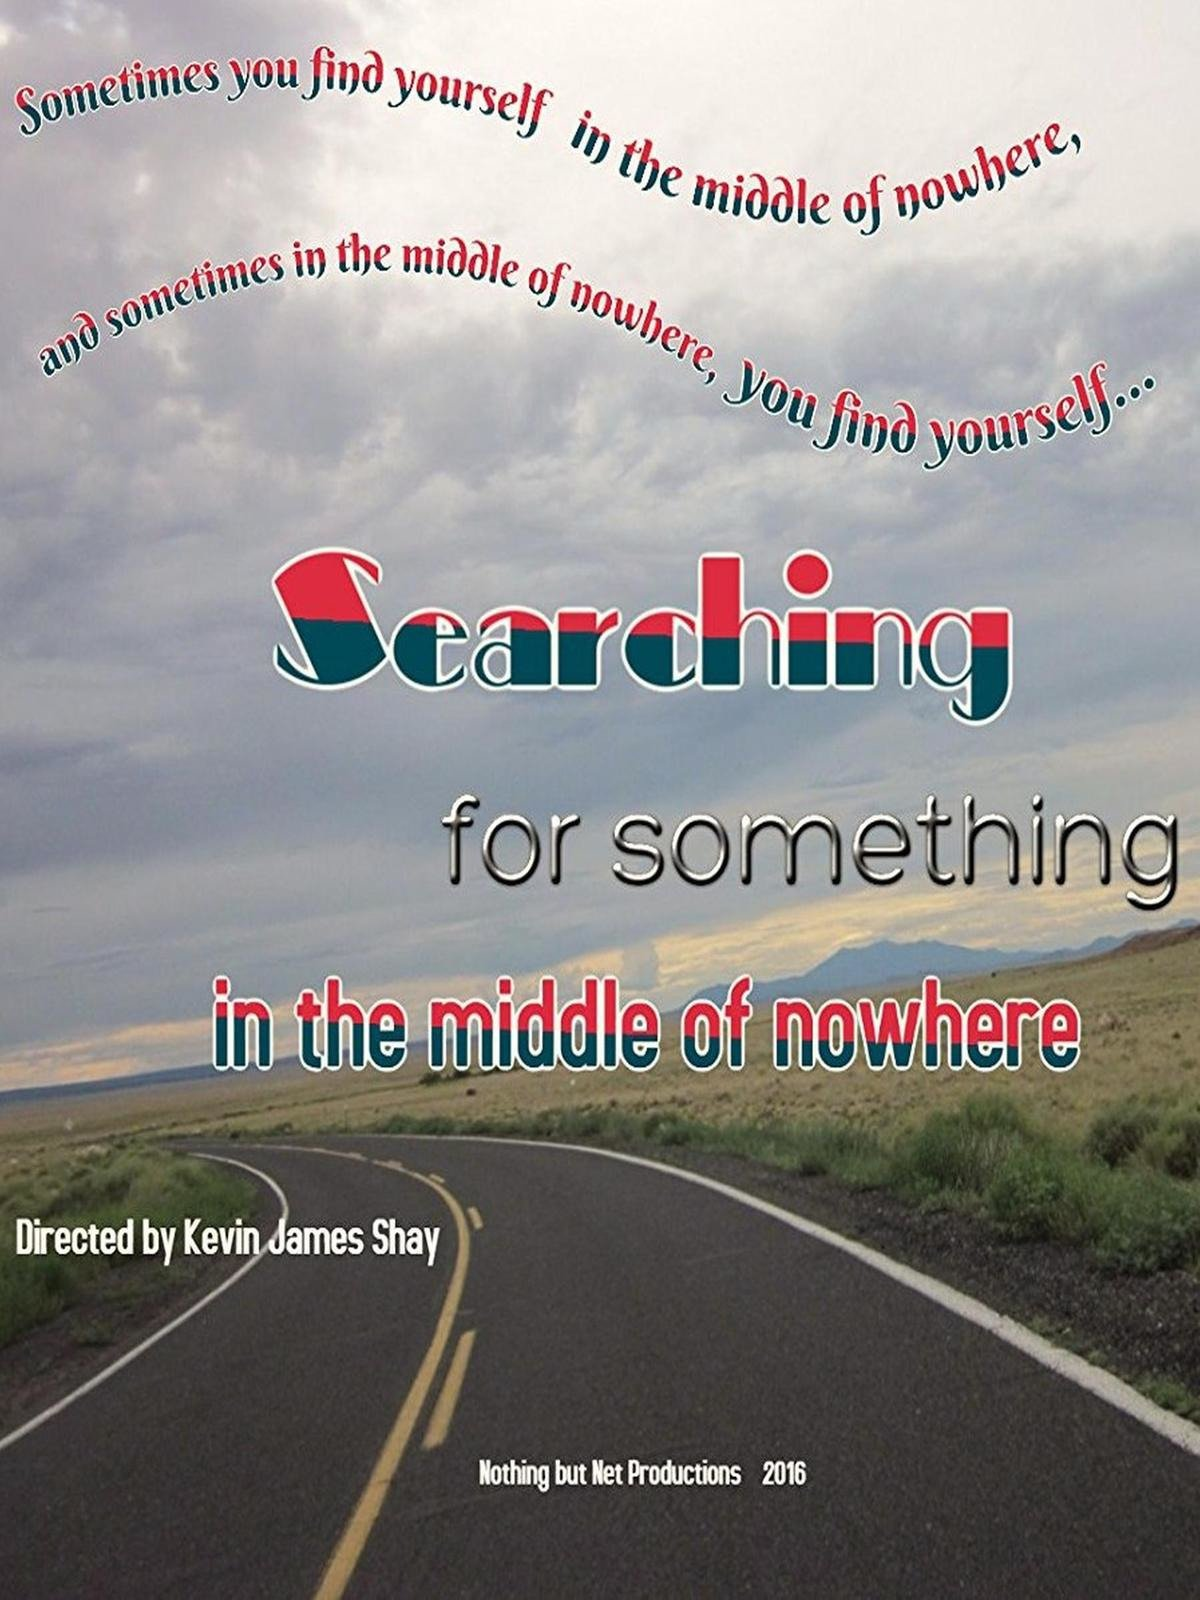 Searching for Something in the Middle of Nowhere